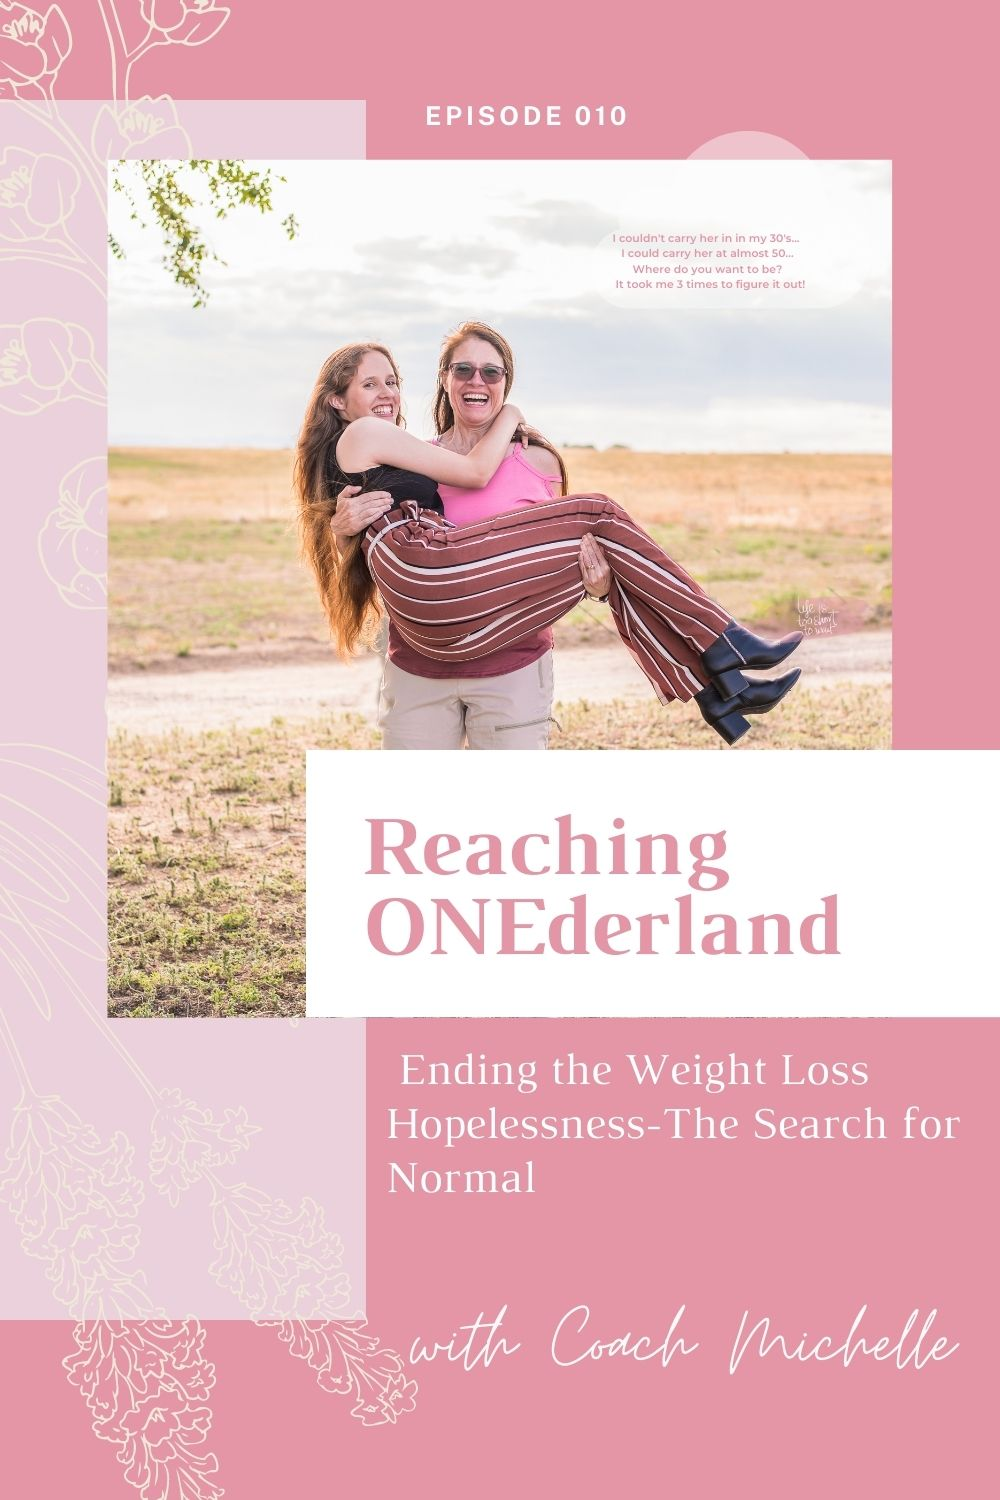 Ending the Weight Loss Hopelessness-The Search for Normal.